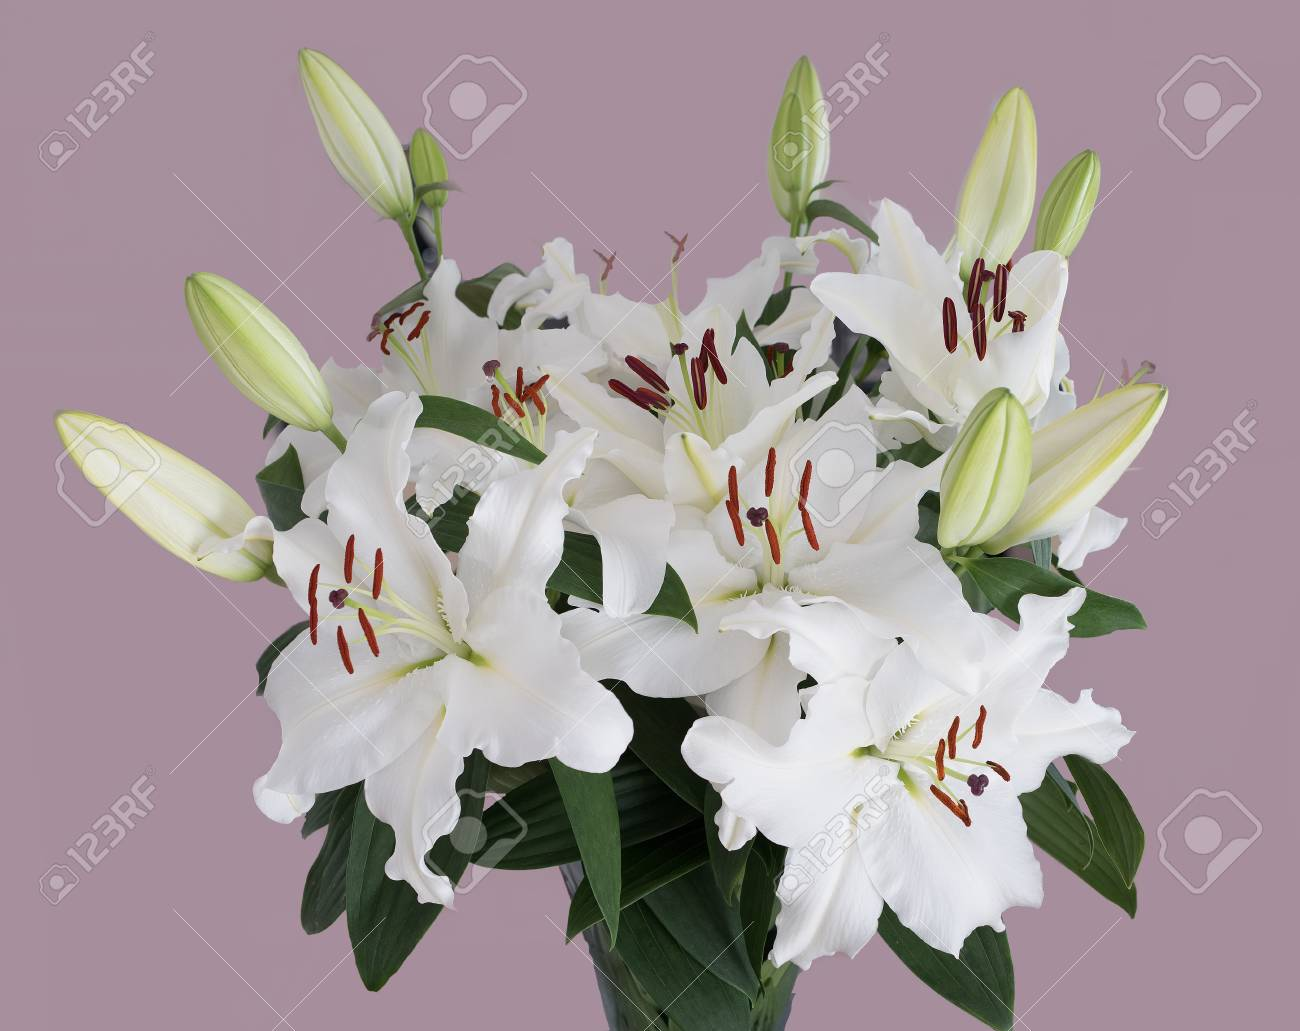 Beautifu Lillies In A Bunch Set On A Dusky Pink Background Flowers